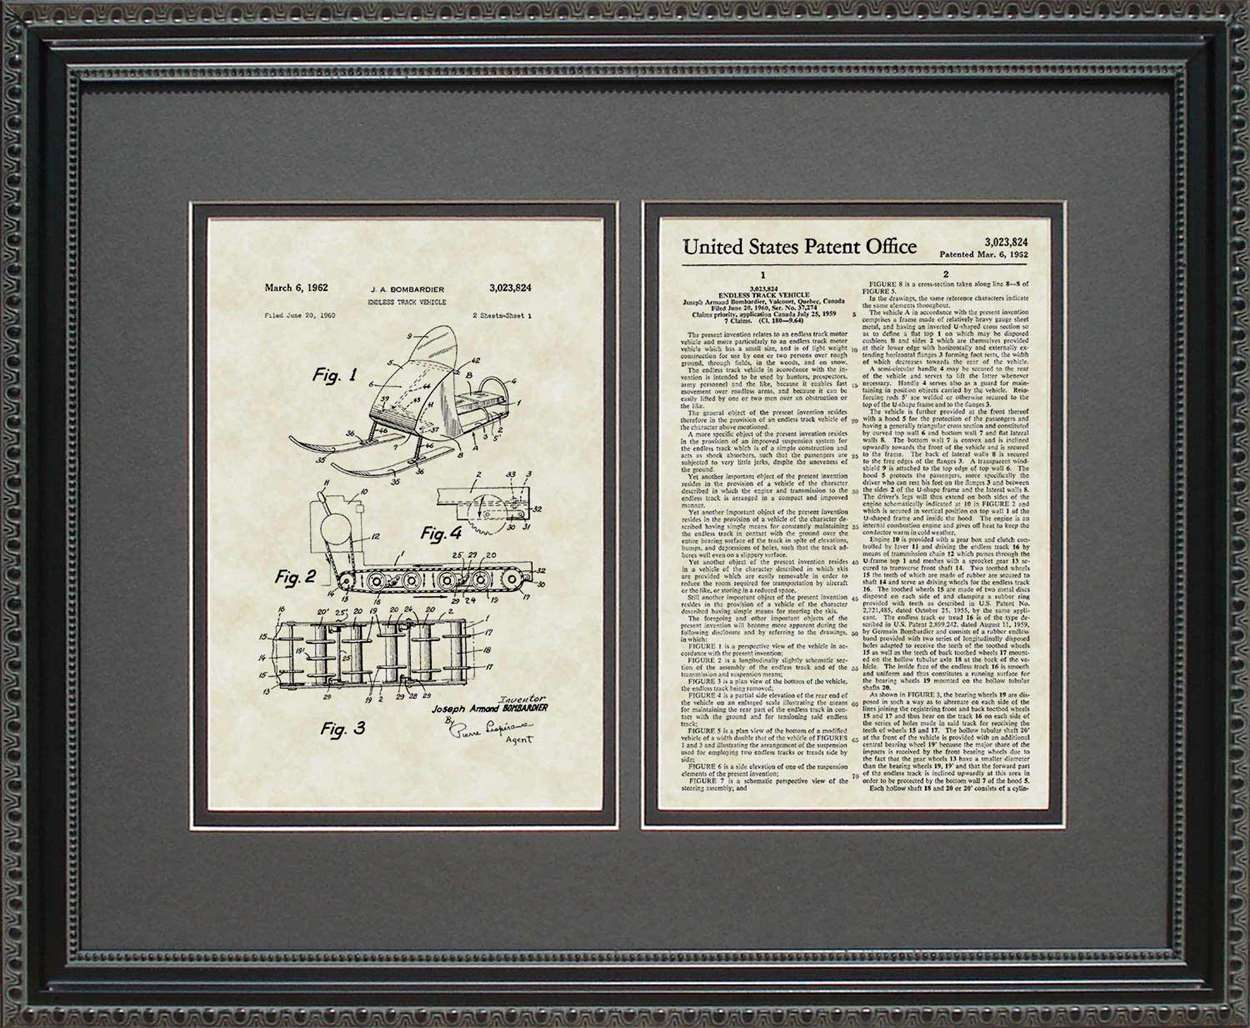 Snowmobile Patent, Art & Copy, Bombadier, 1962, 16x20